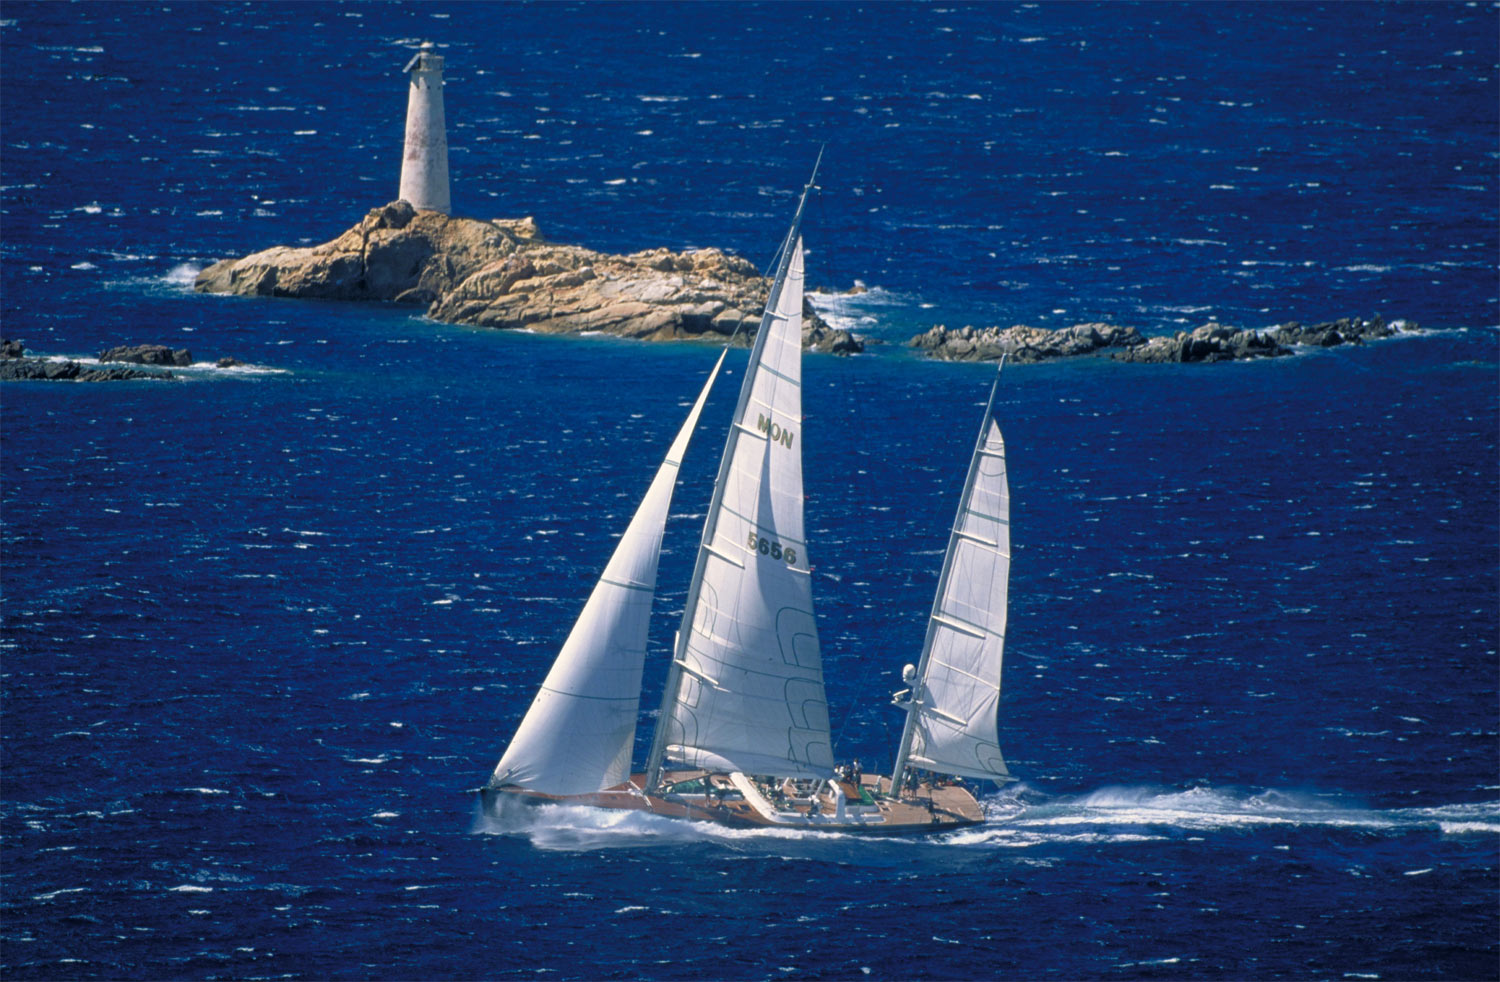 The Wally Story to be Told at The Upcoming German Superyacht Conference 11